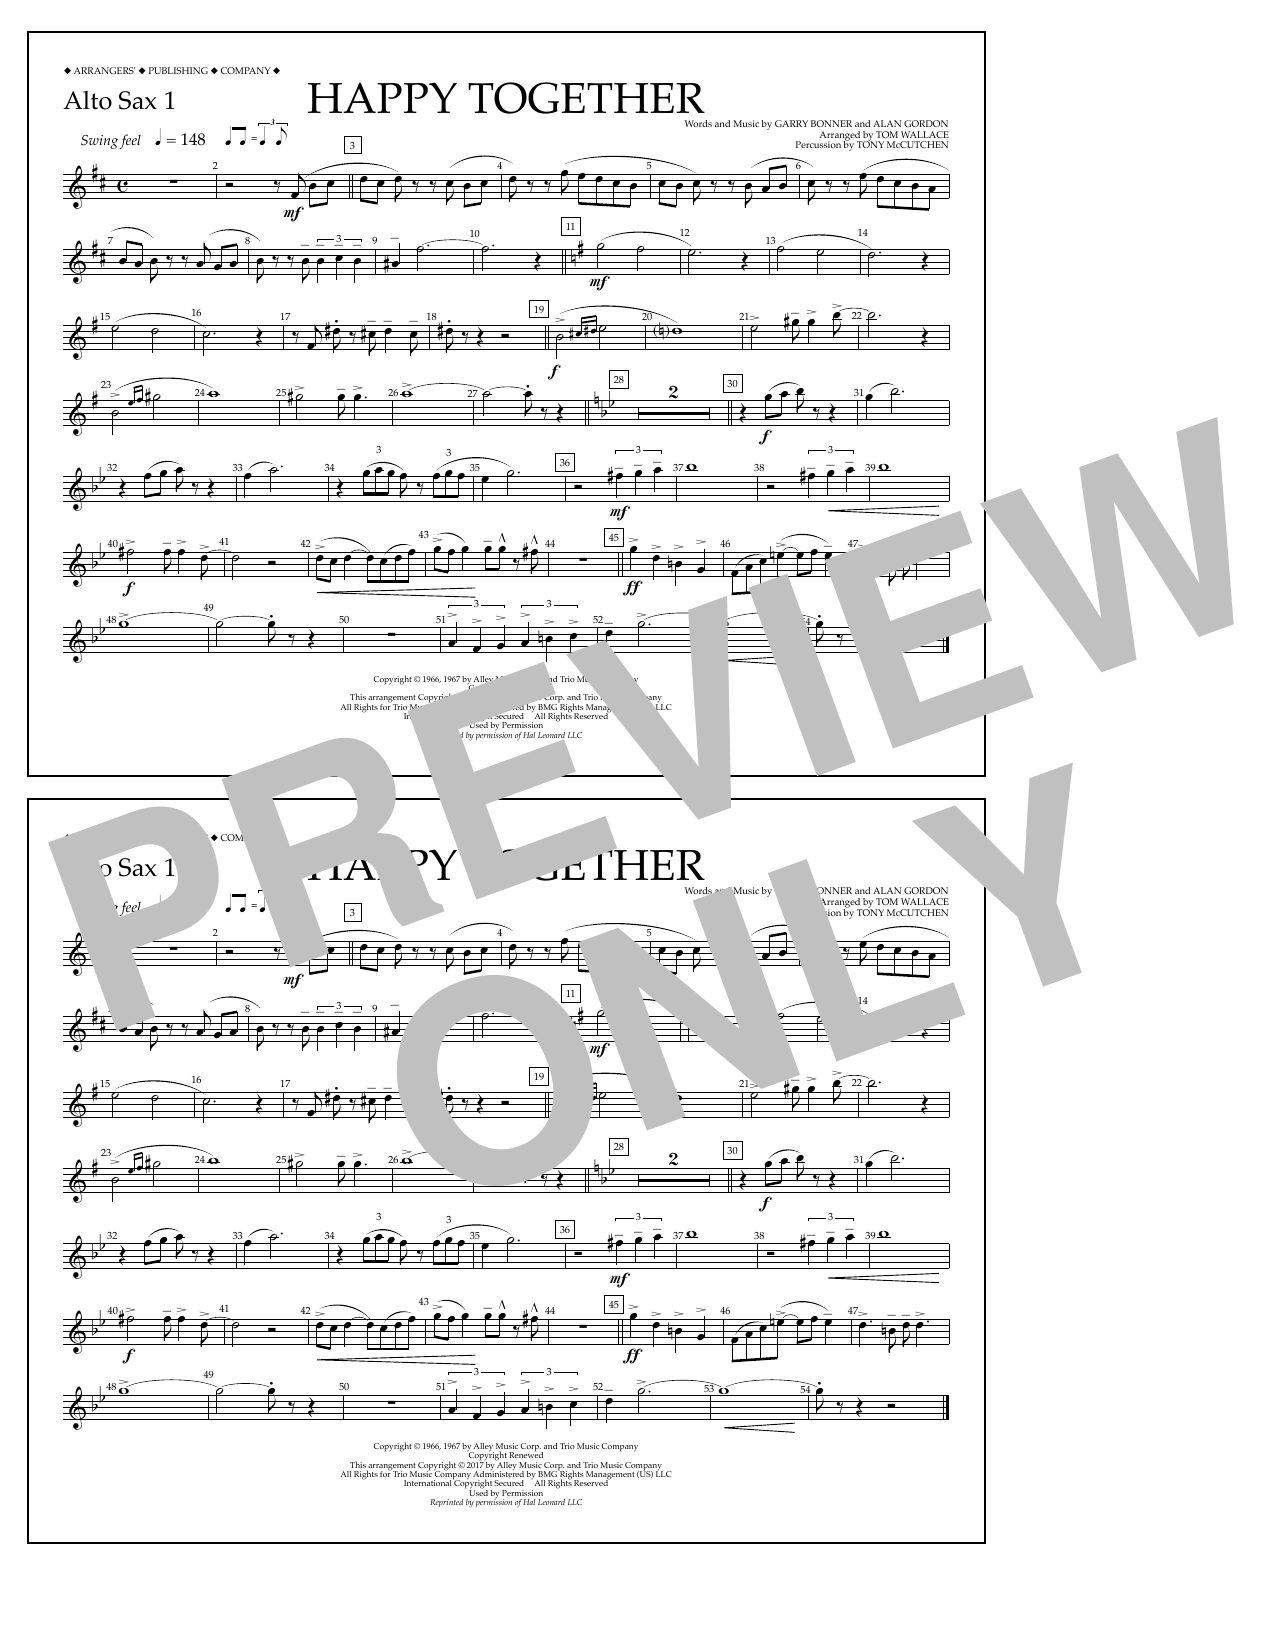 Happy Together - Alto Sax 1 Sheet Music